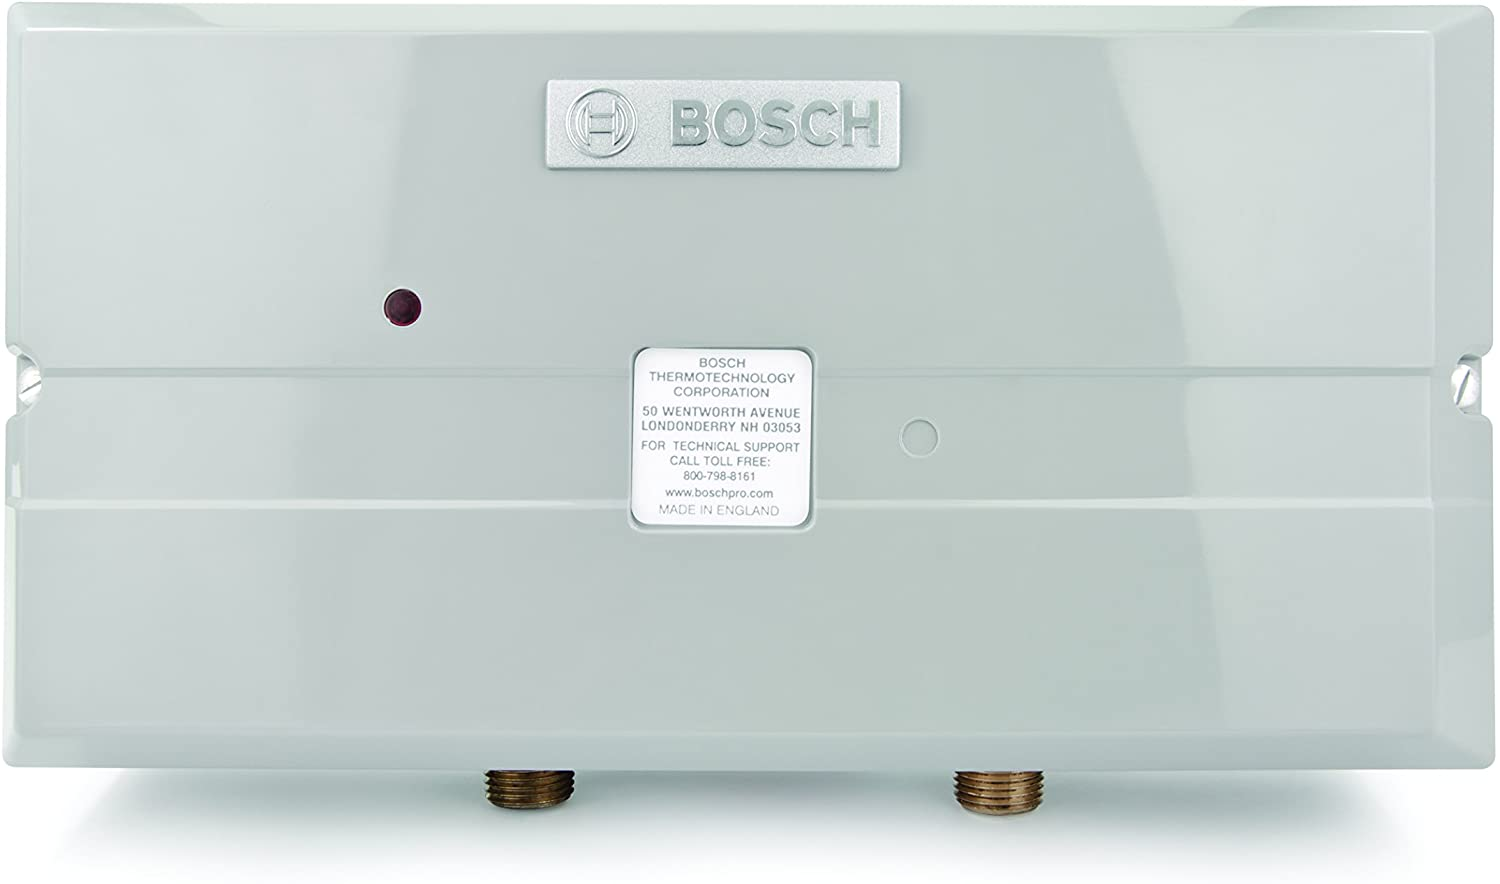 Bosch Electric Tankless Water Heater - Eliminate Time for Hot Water - Easy Installation Image